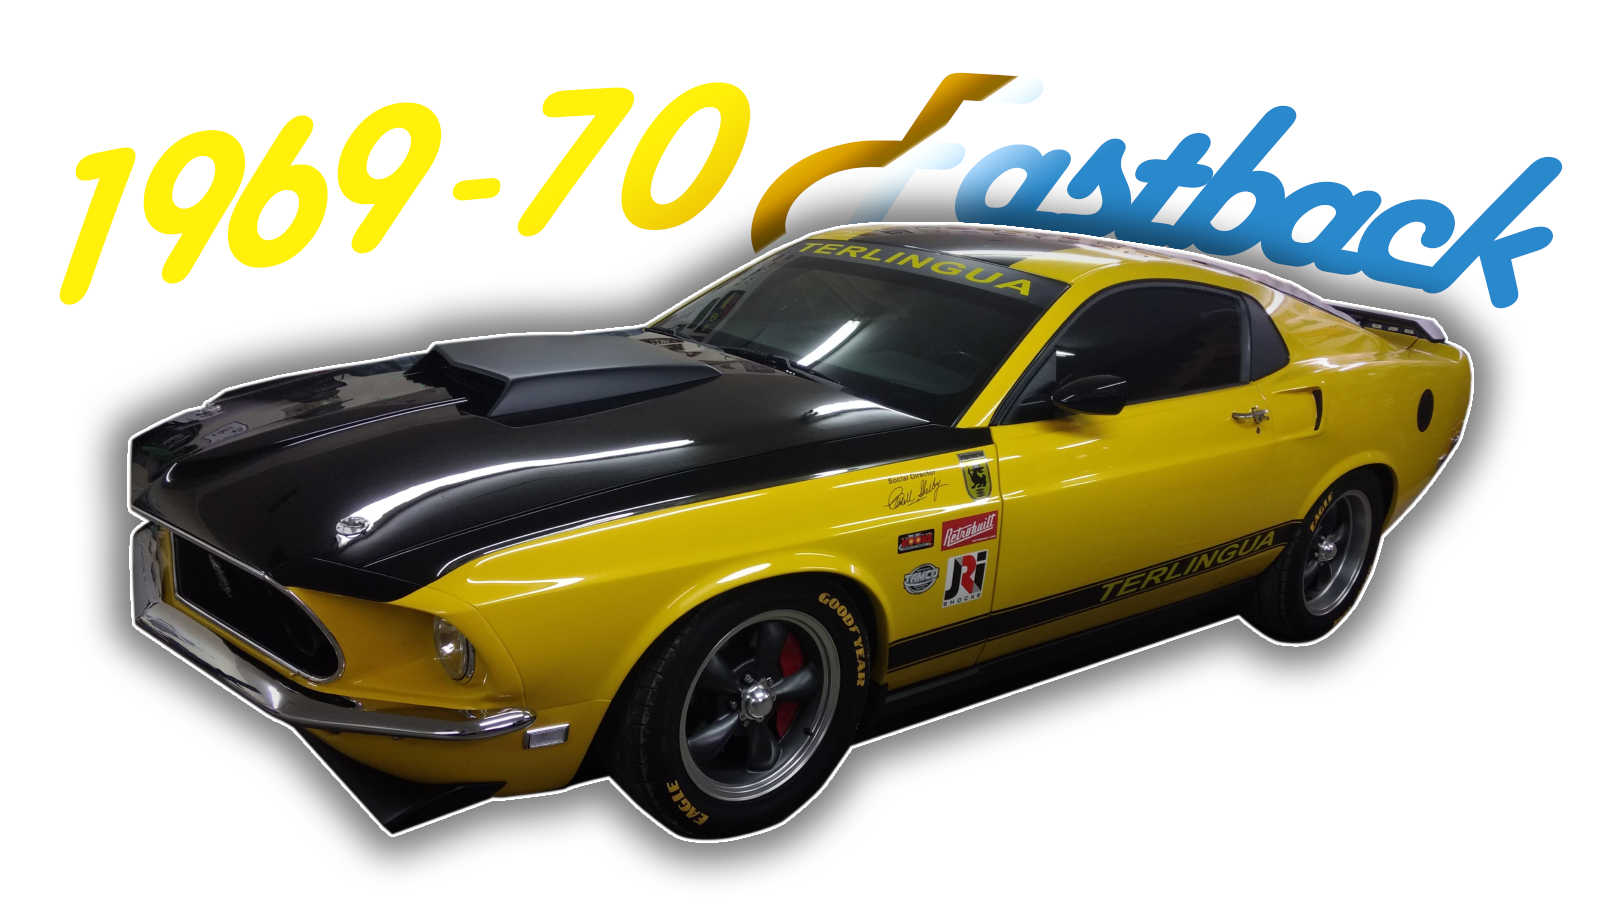 Vehicle Page Image 69-70 Fastback.png